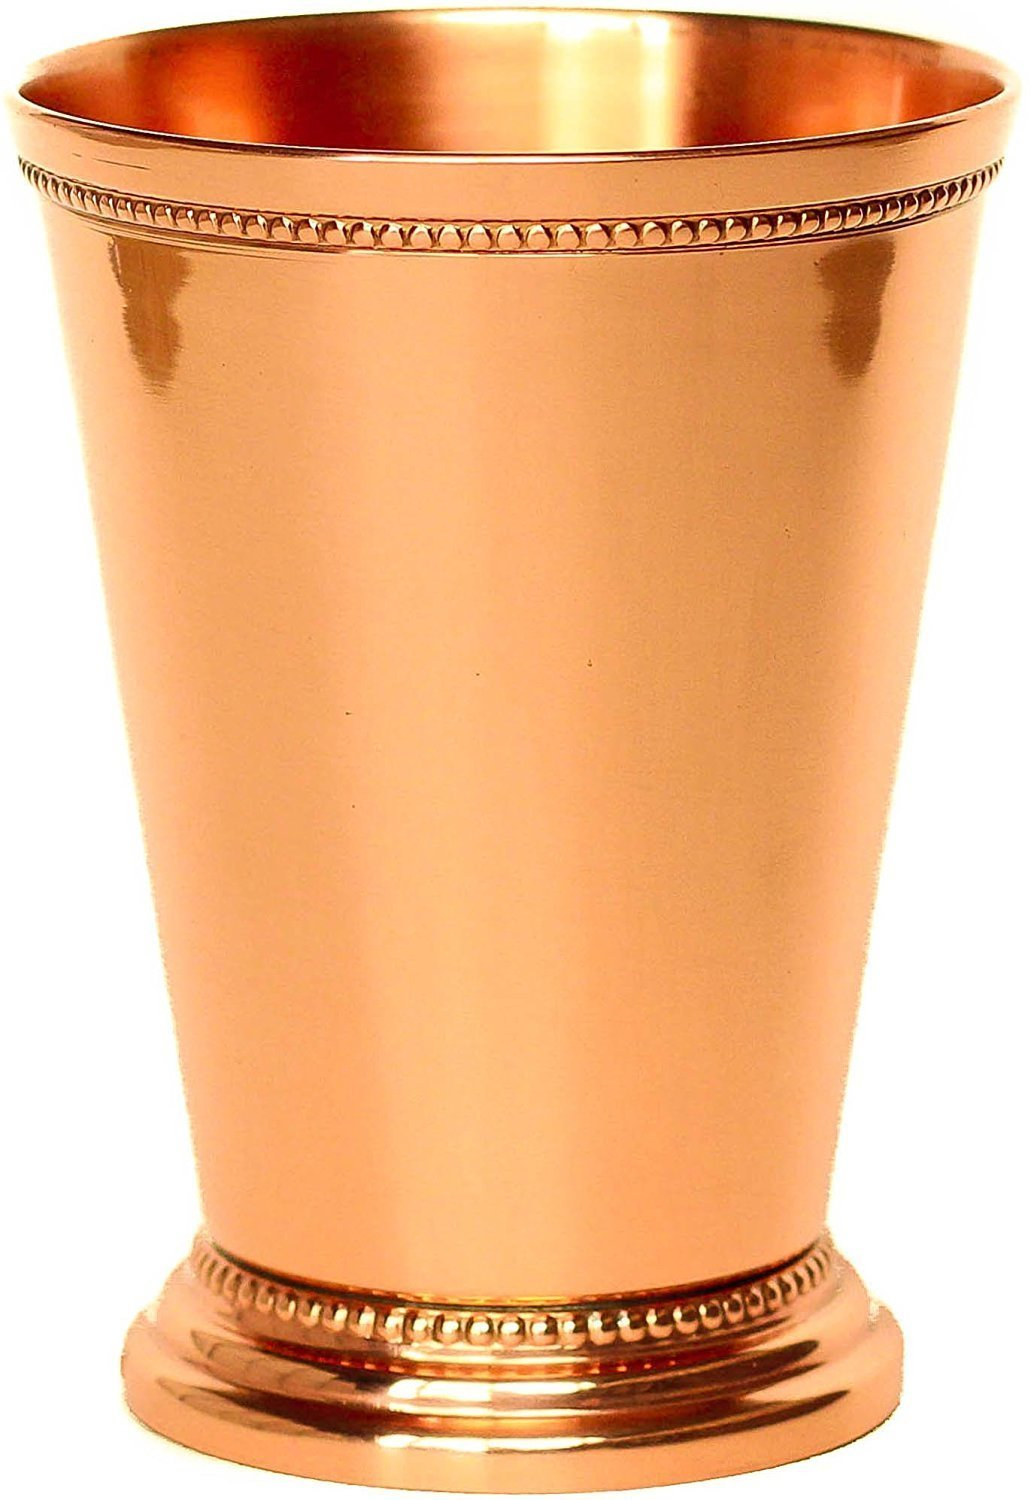 PARIJAT HANDICRAFT Mint Julep Cup Pure Copper Moscow Mule Mint Julep Cup beautifully handcrafted Capacity 12 Ounce